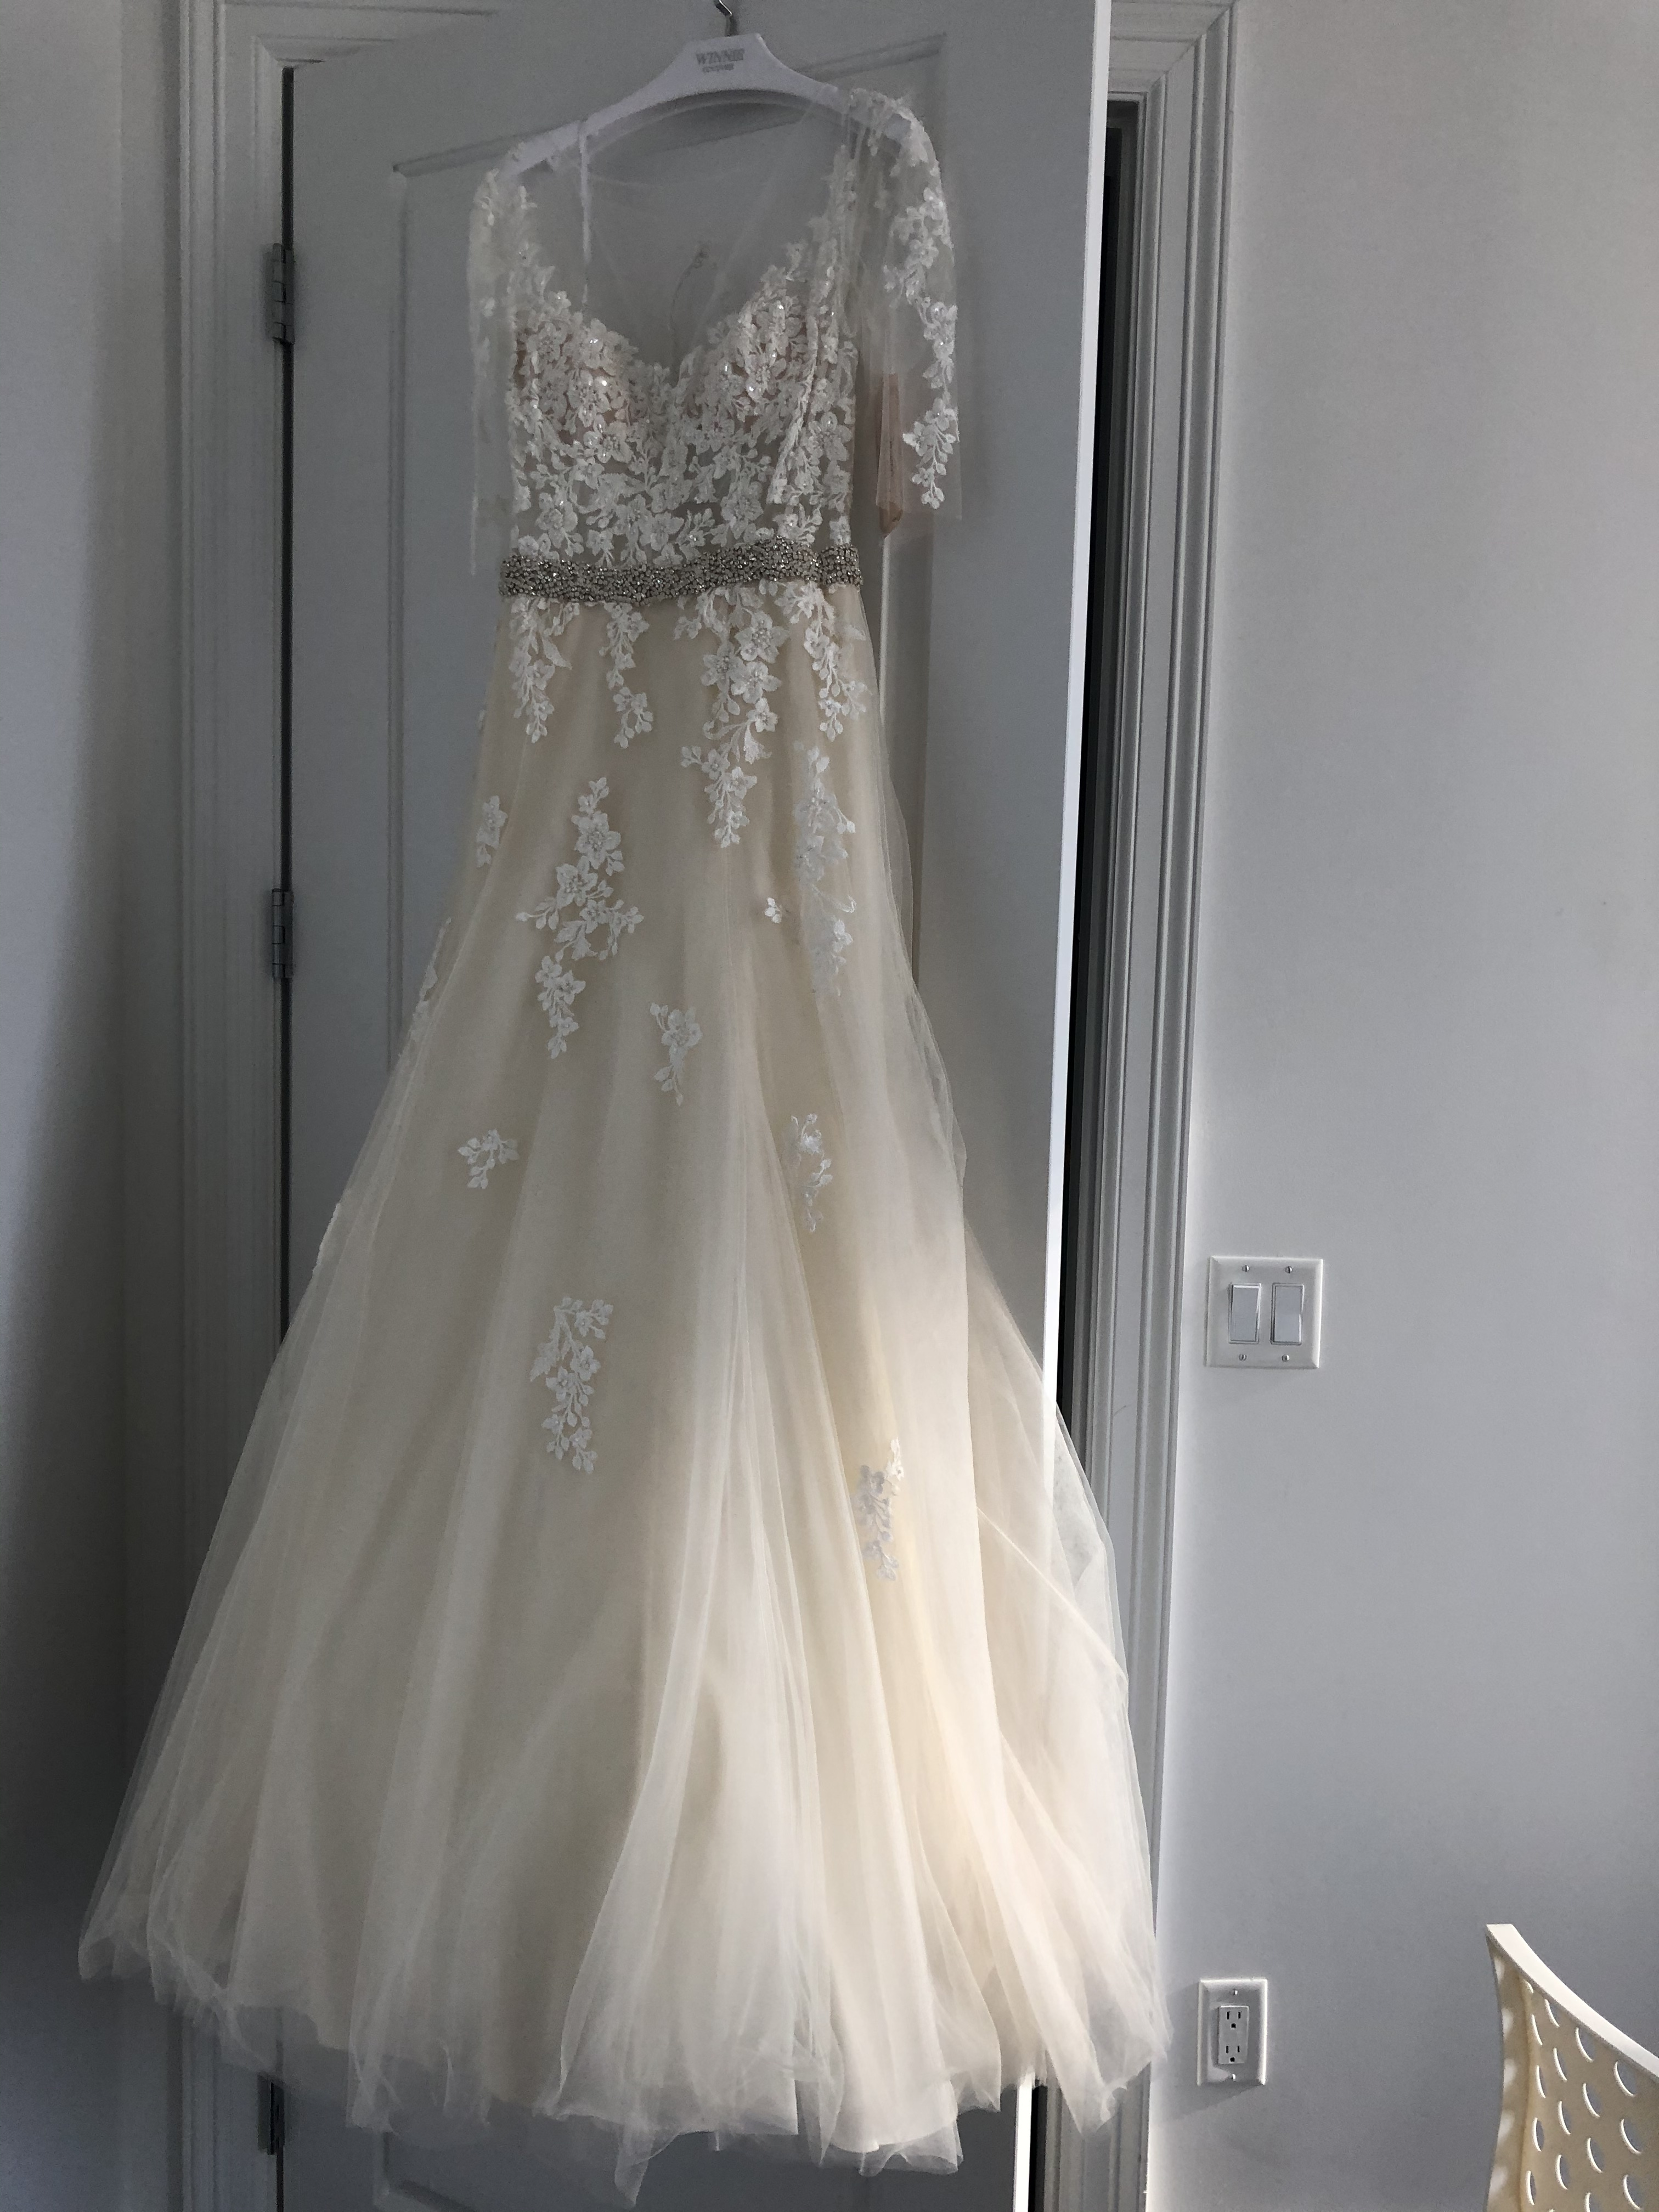 Winnie couture - No info size  - $3800 - (5% OFF)